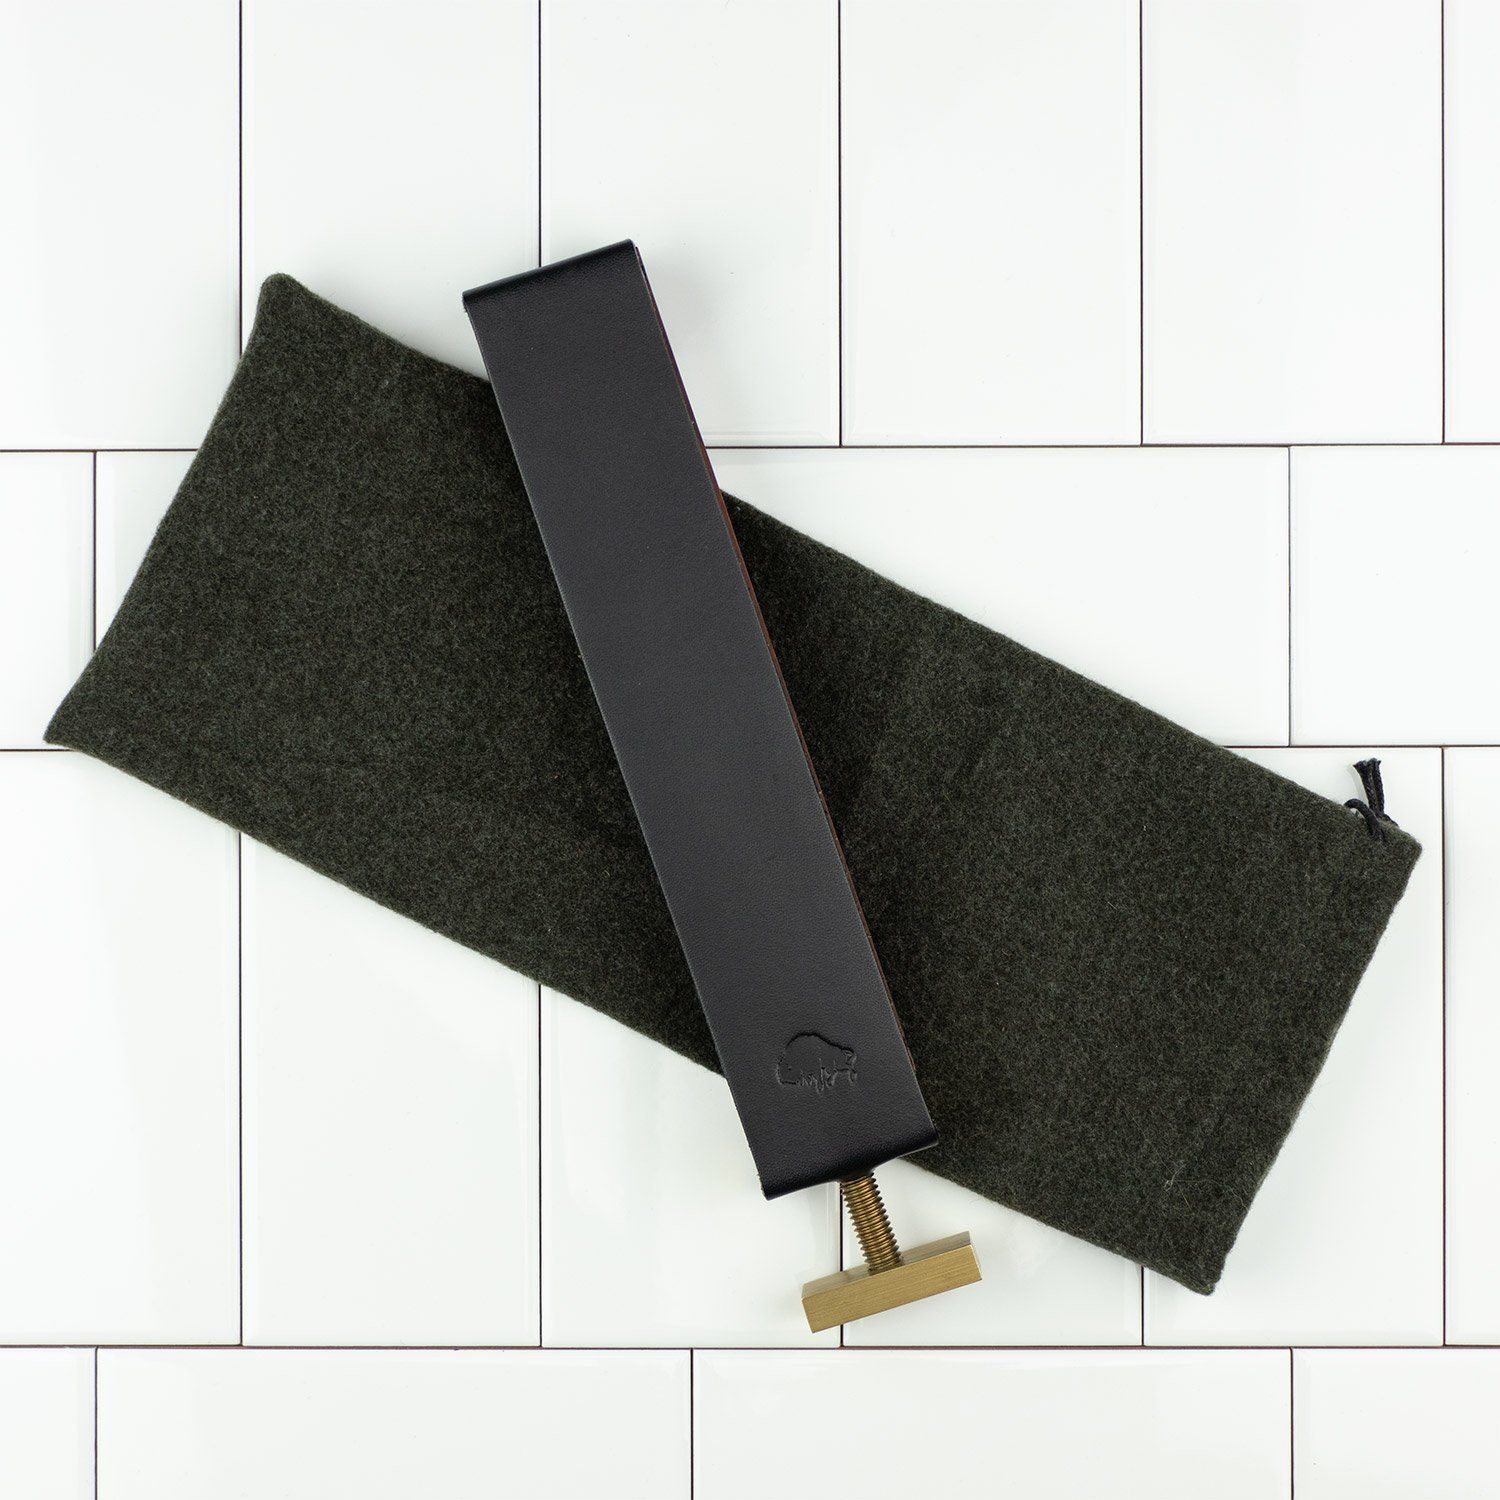 Ezra Arthur Paddle Strop and Case